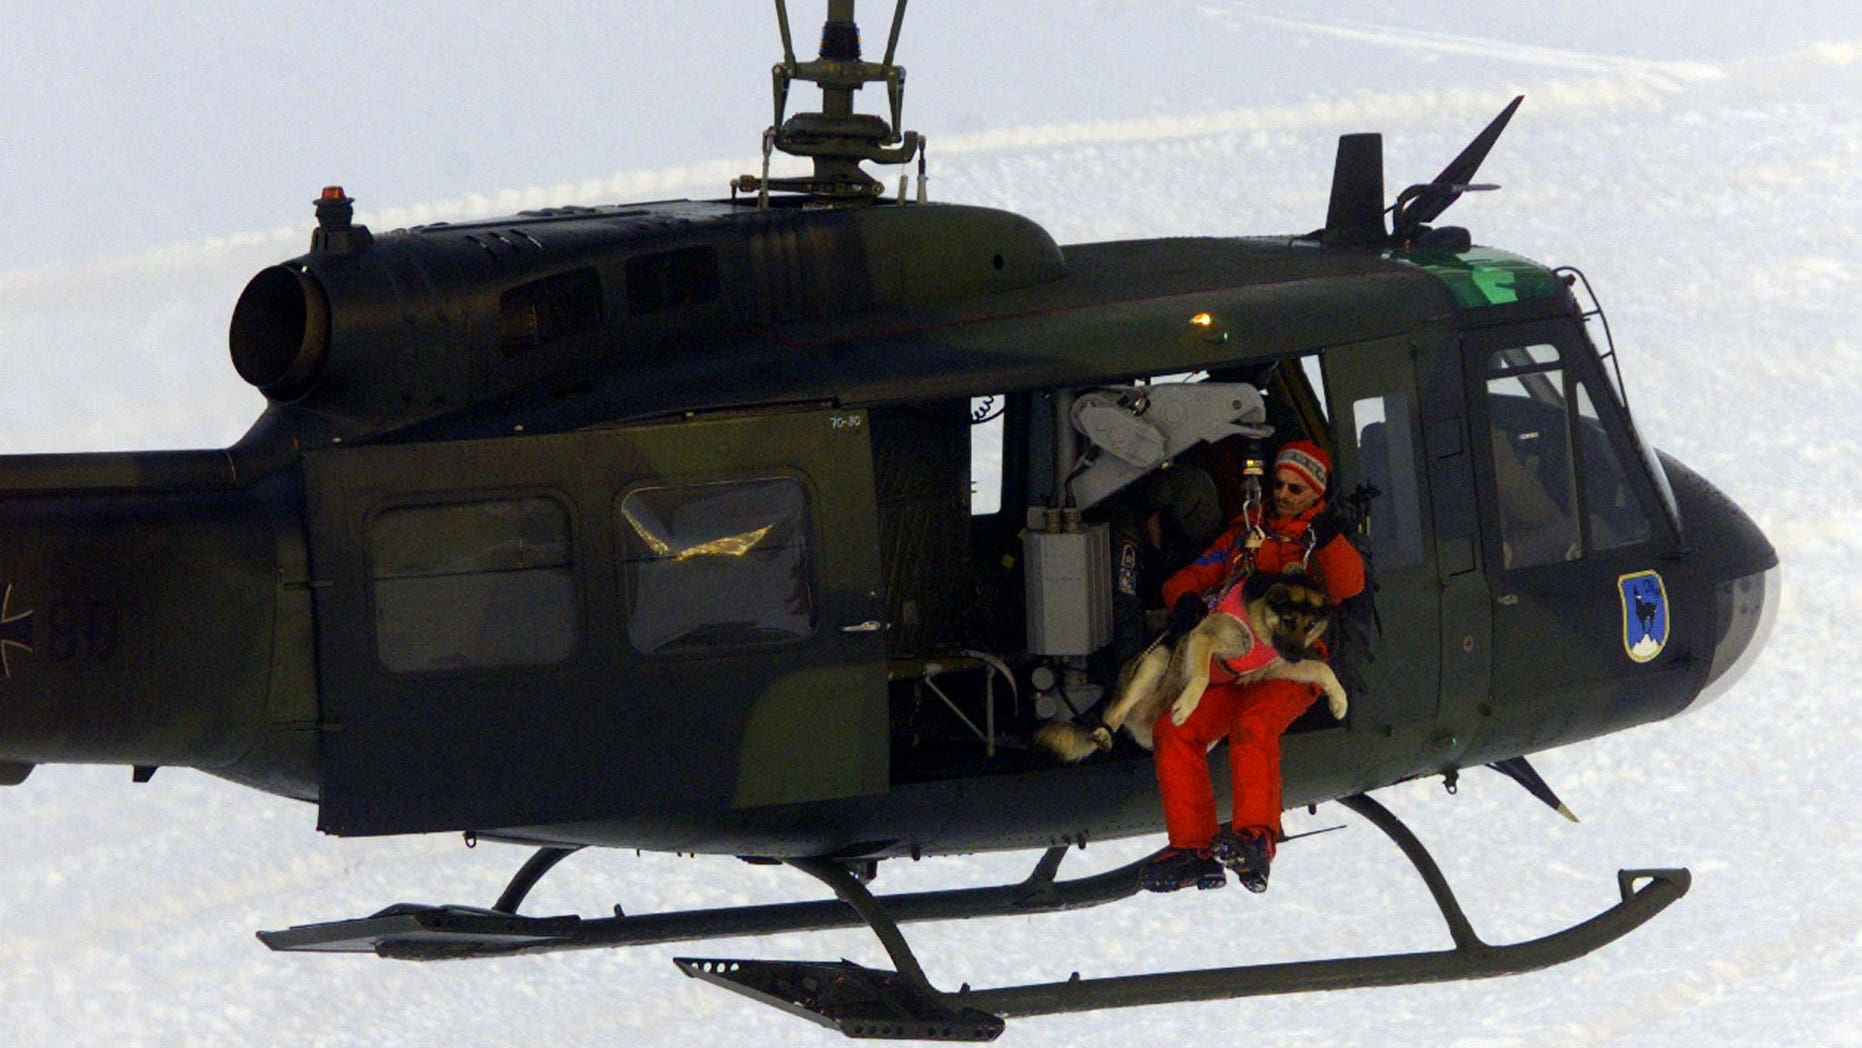 German mountain rescue worker Stefan Bonleitner and his avalanche dog Gina prepares to winch out of a helicopter during a press demonstration of German mountain rescue workers in the Alps near Garmisch-Partenkirchen, January 20, 1999.